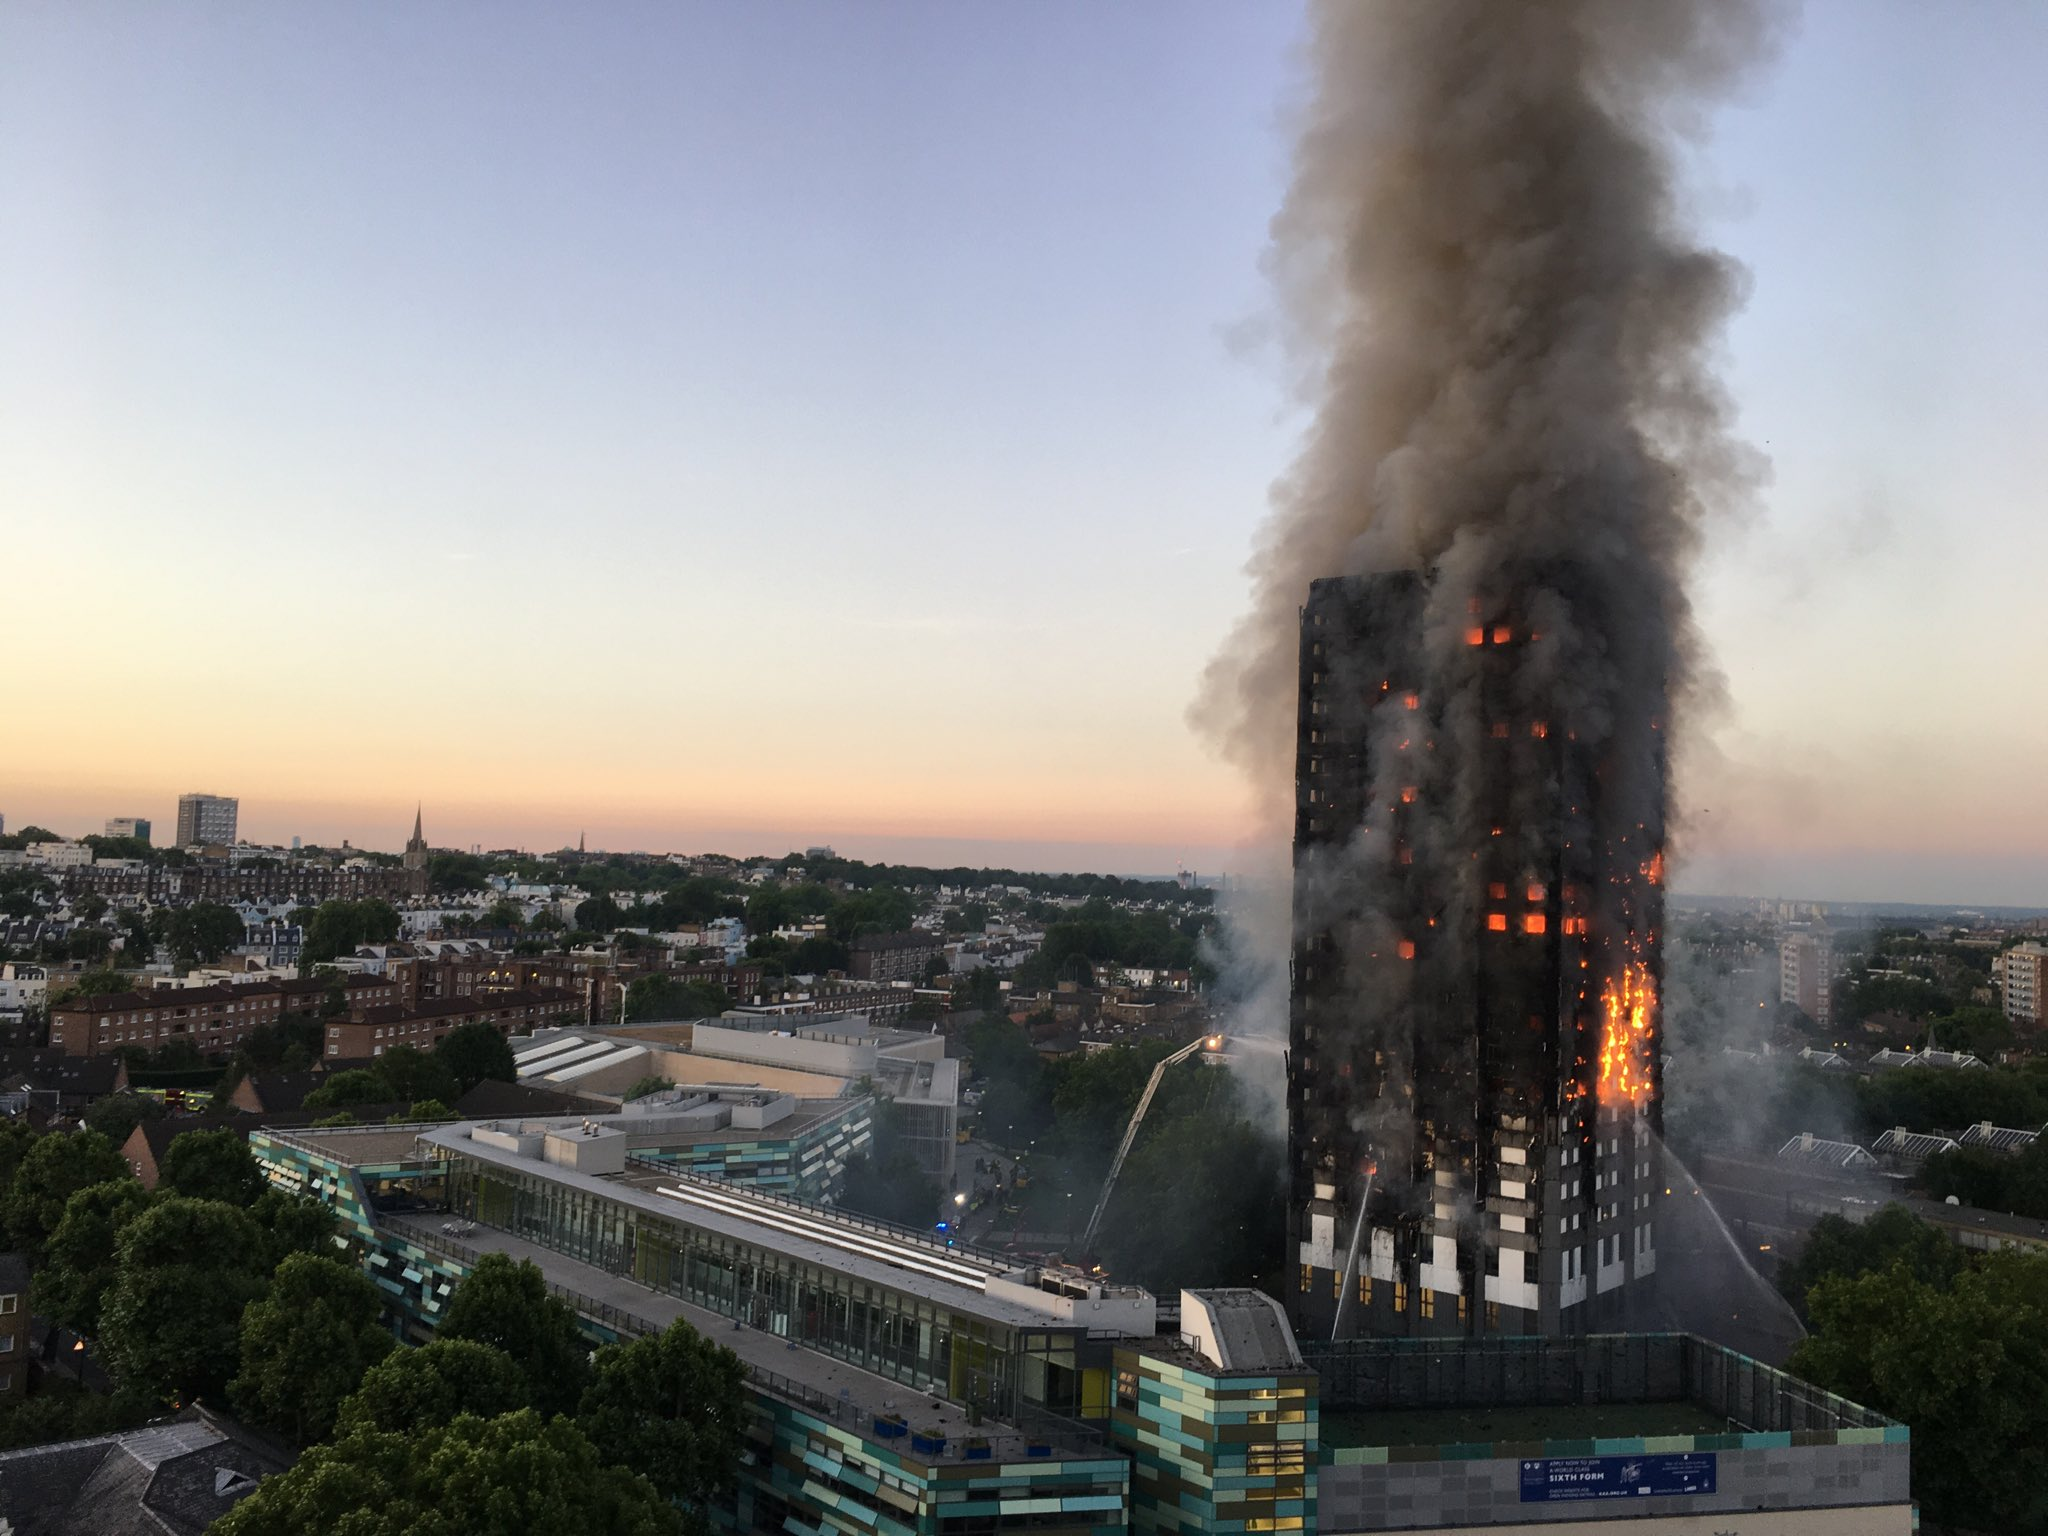 Grenfell Tower fire - Wikipedia